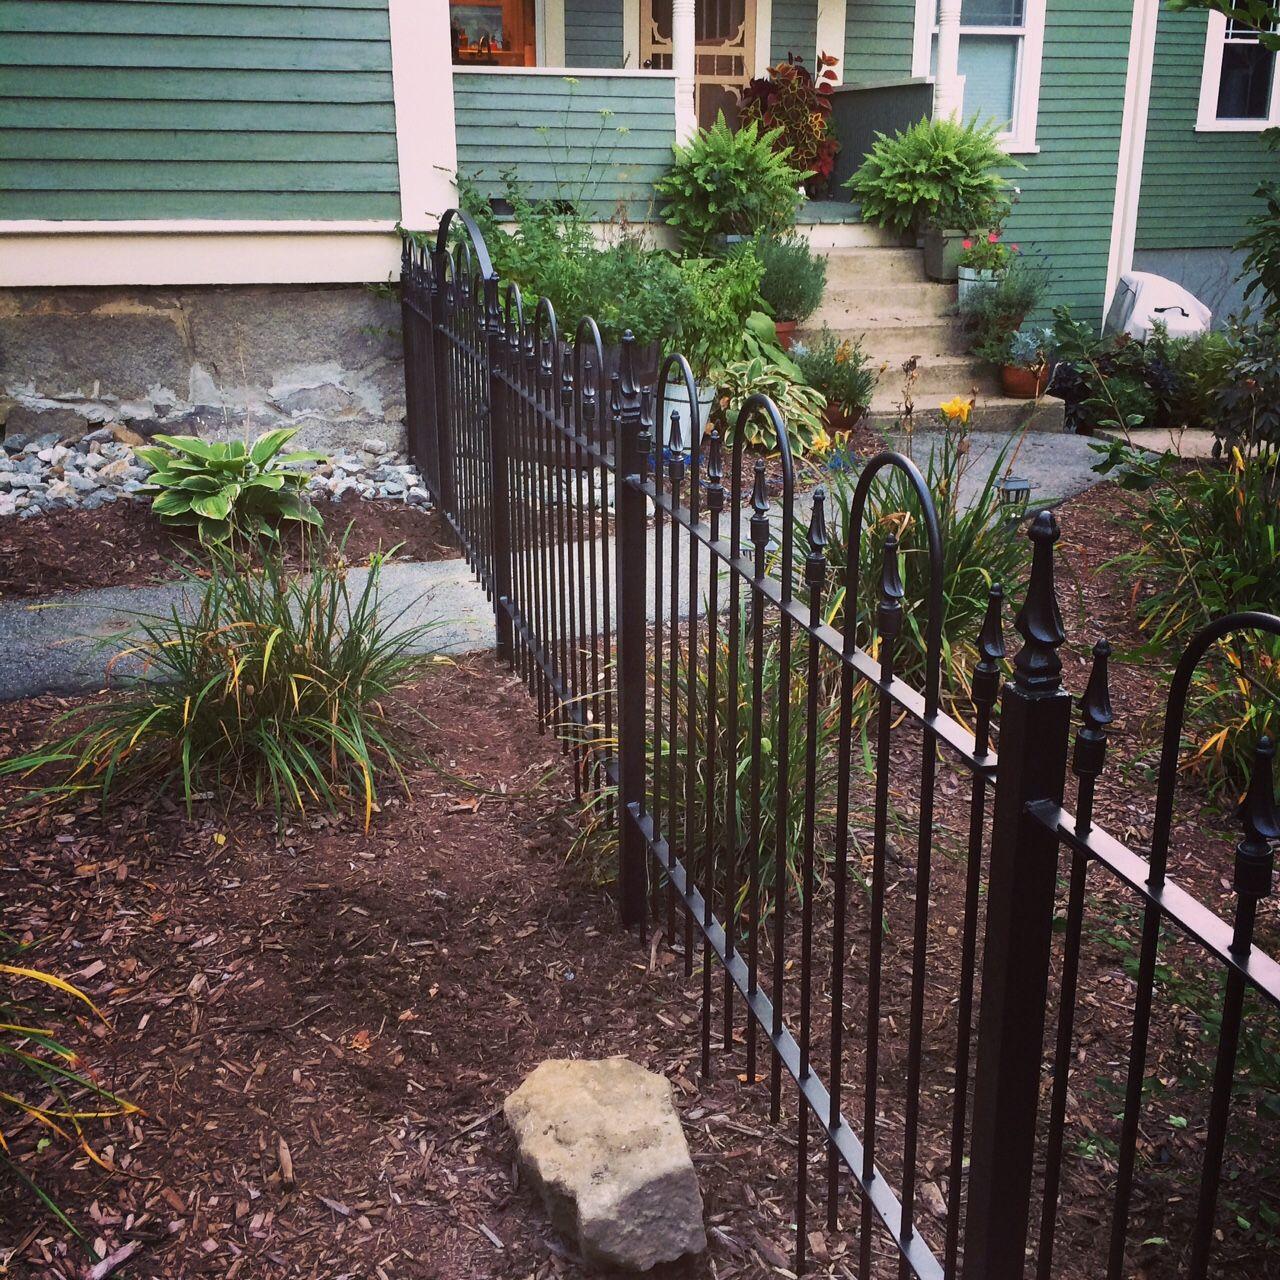 High Quality Wrought Iron Fence To Enclose Yards   3 Foot Tall